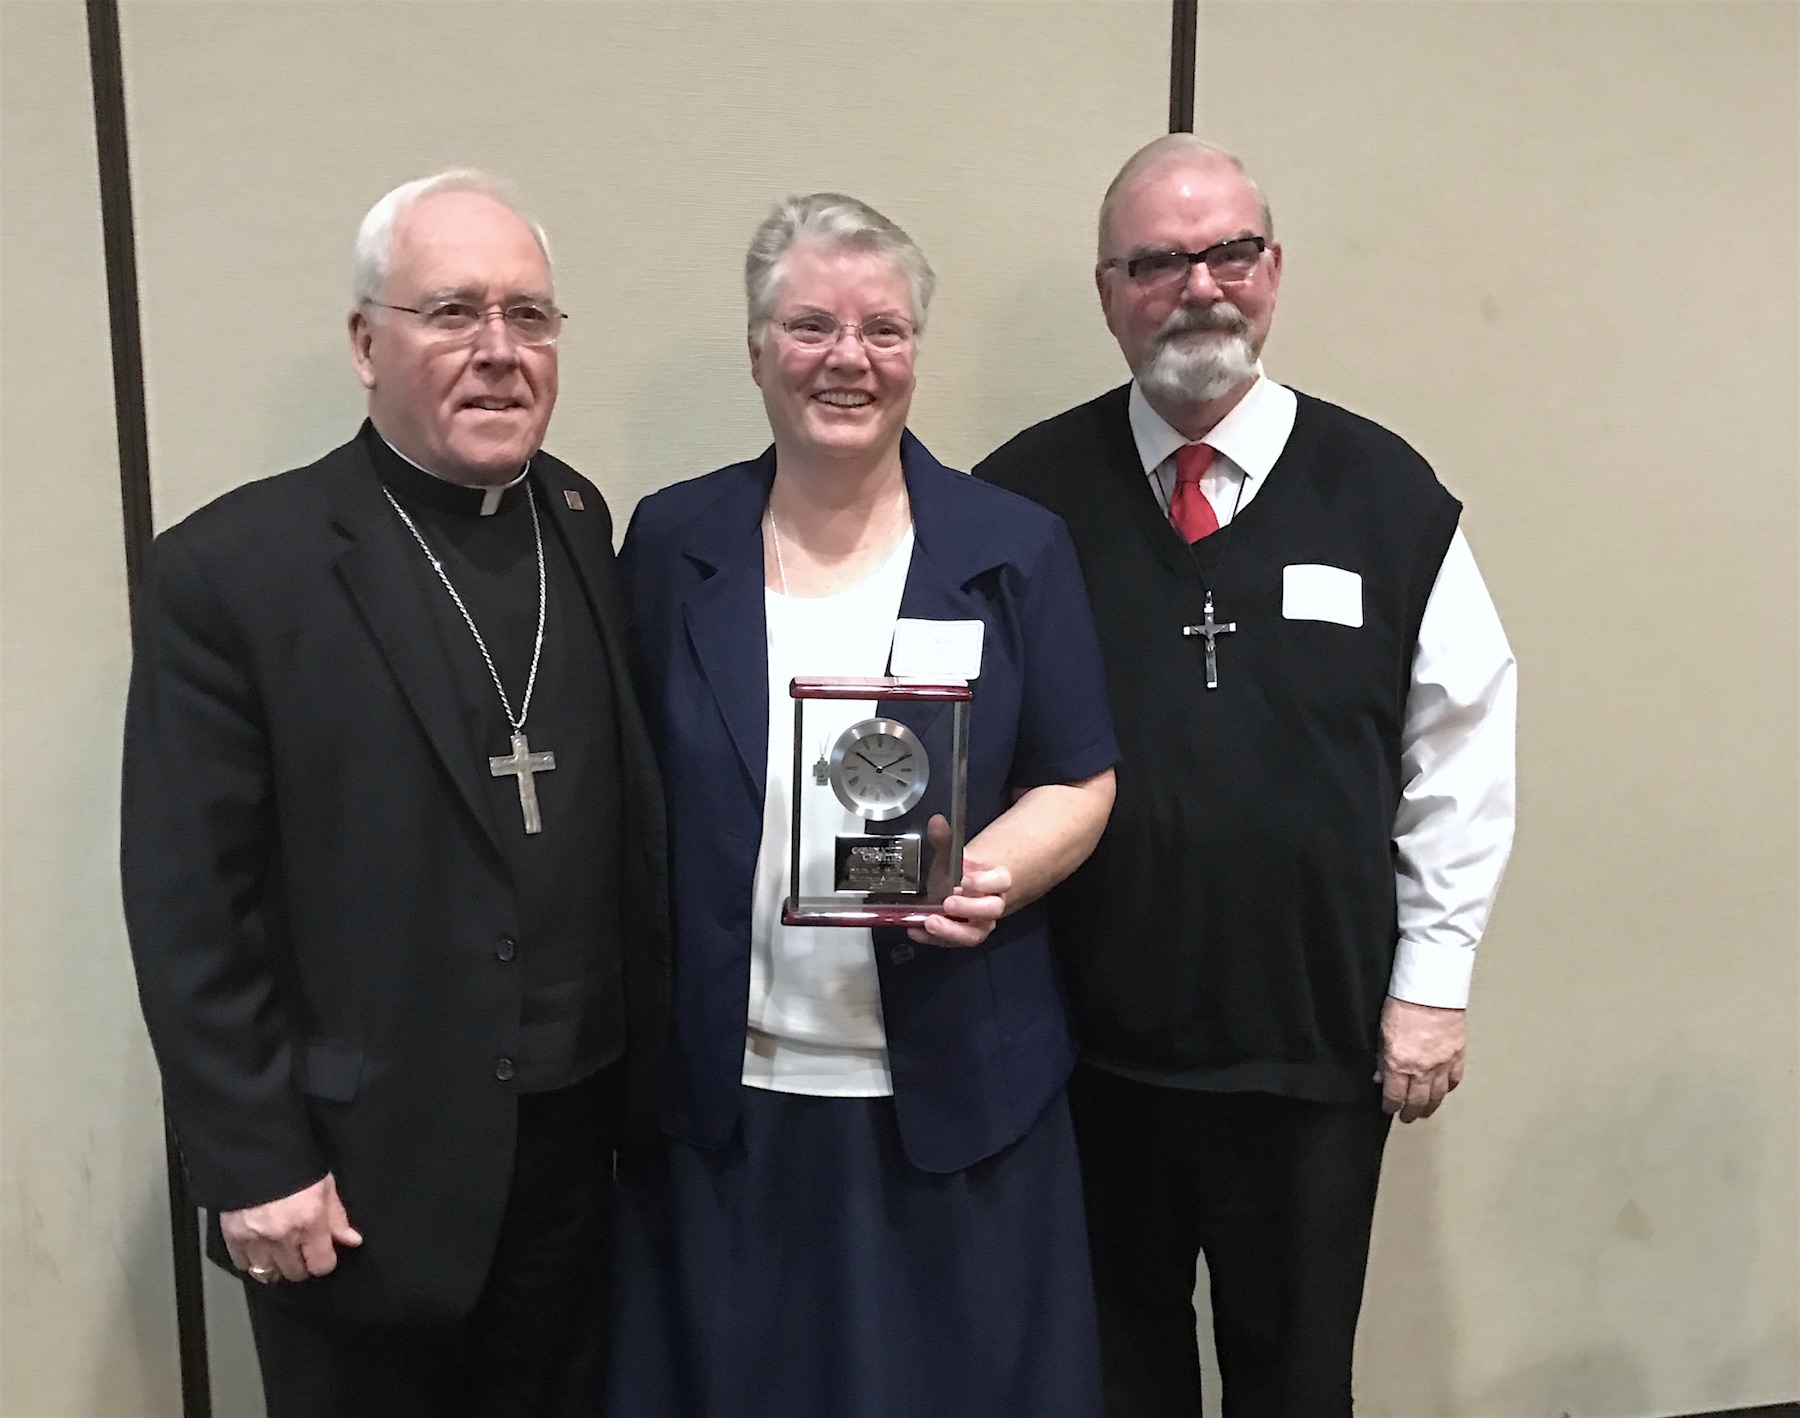 Sister Nora Sweeney stands with Bishop Richard J. Malone and her brother, Brother Thomas Sweeney, after receiving the Catholic Charities Hero of Hope award.